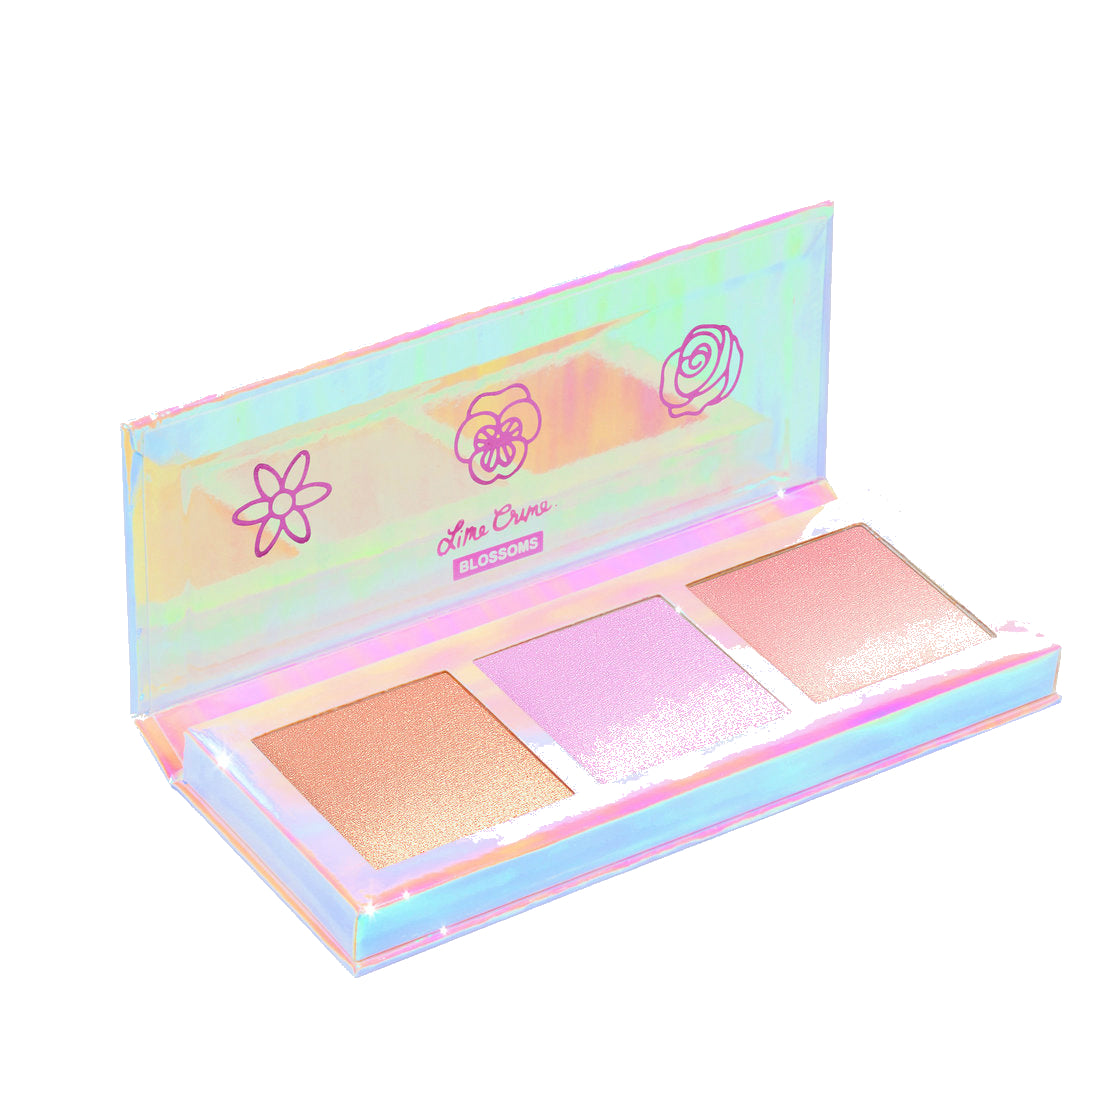 HI-LITE Blossoms -  Highlighter Powder